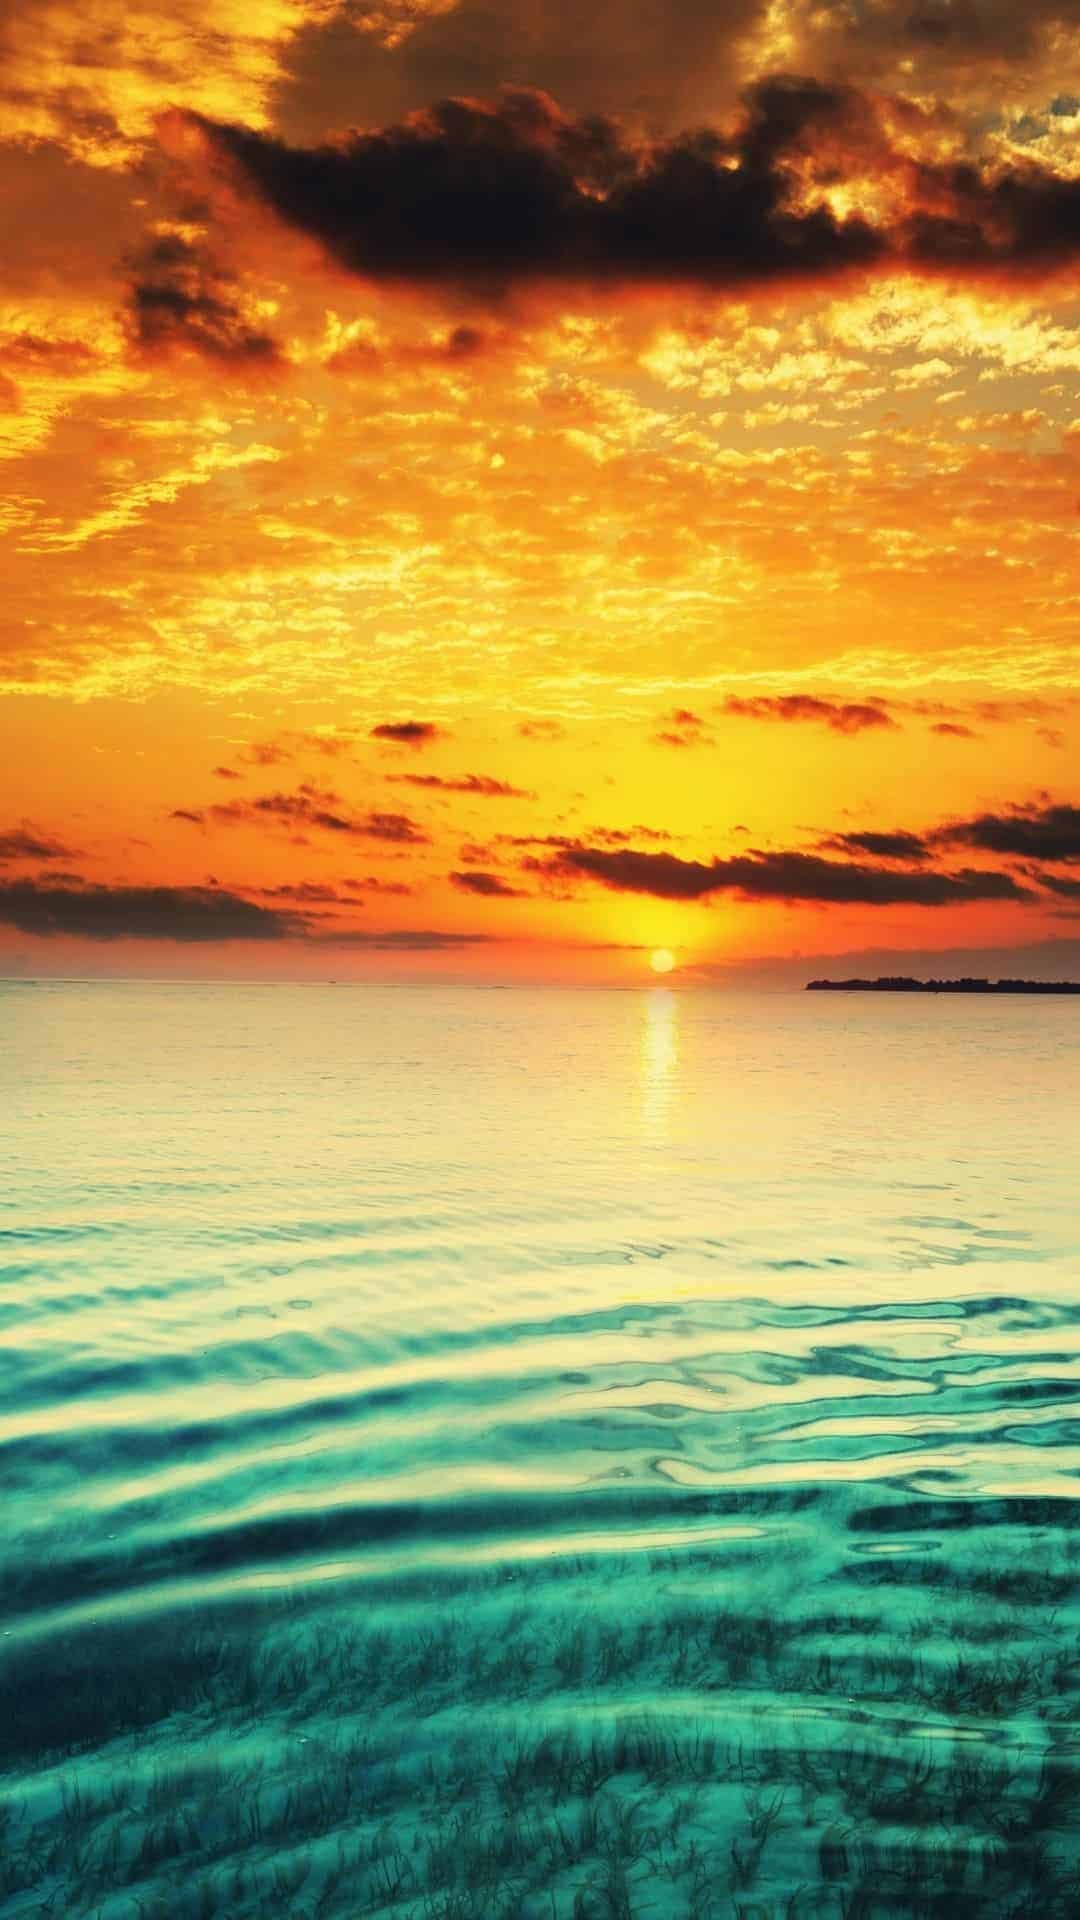 Sunset iphone Wallpaper